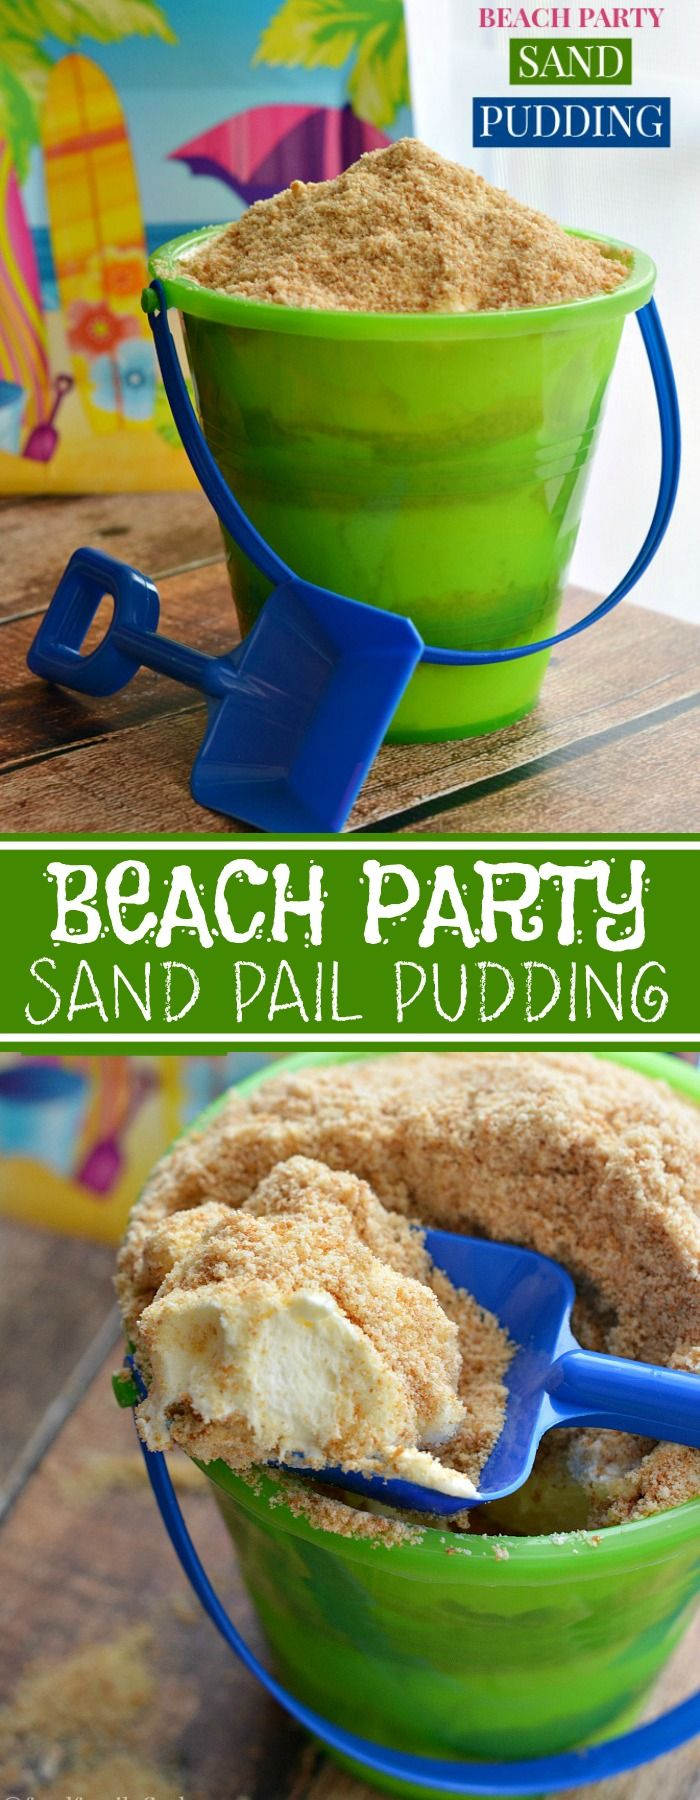 Beach Themed Party Sand Pail Pudding Recipe